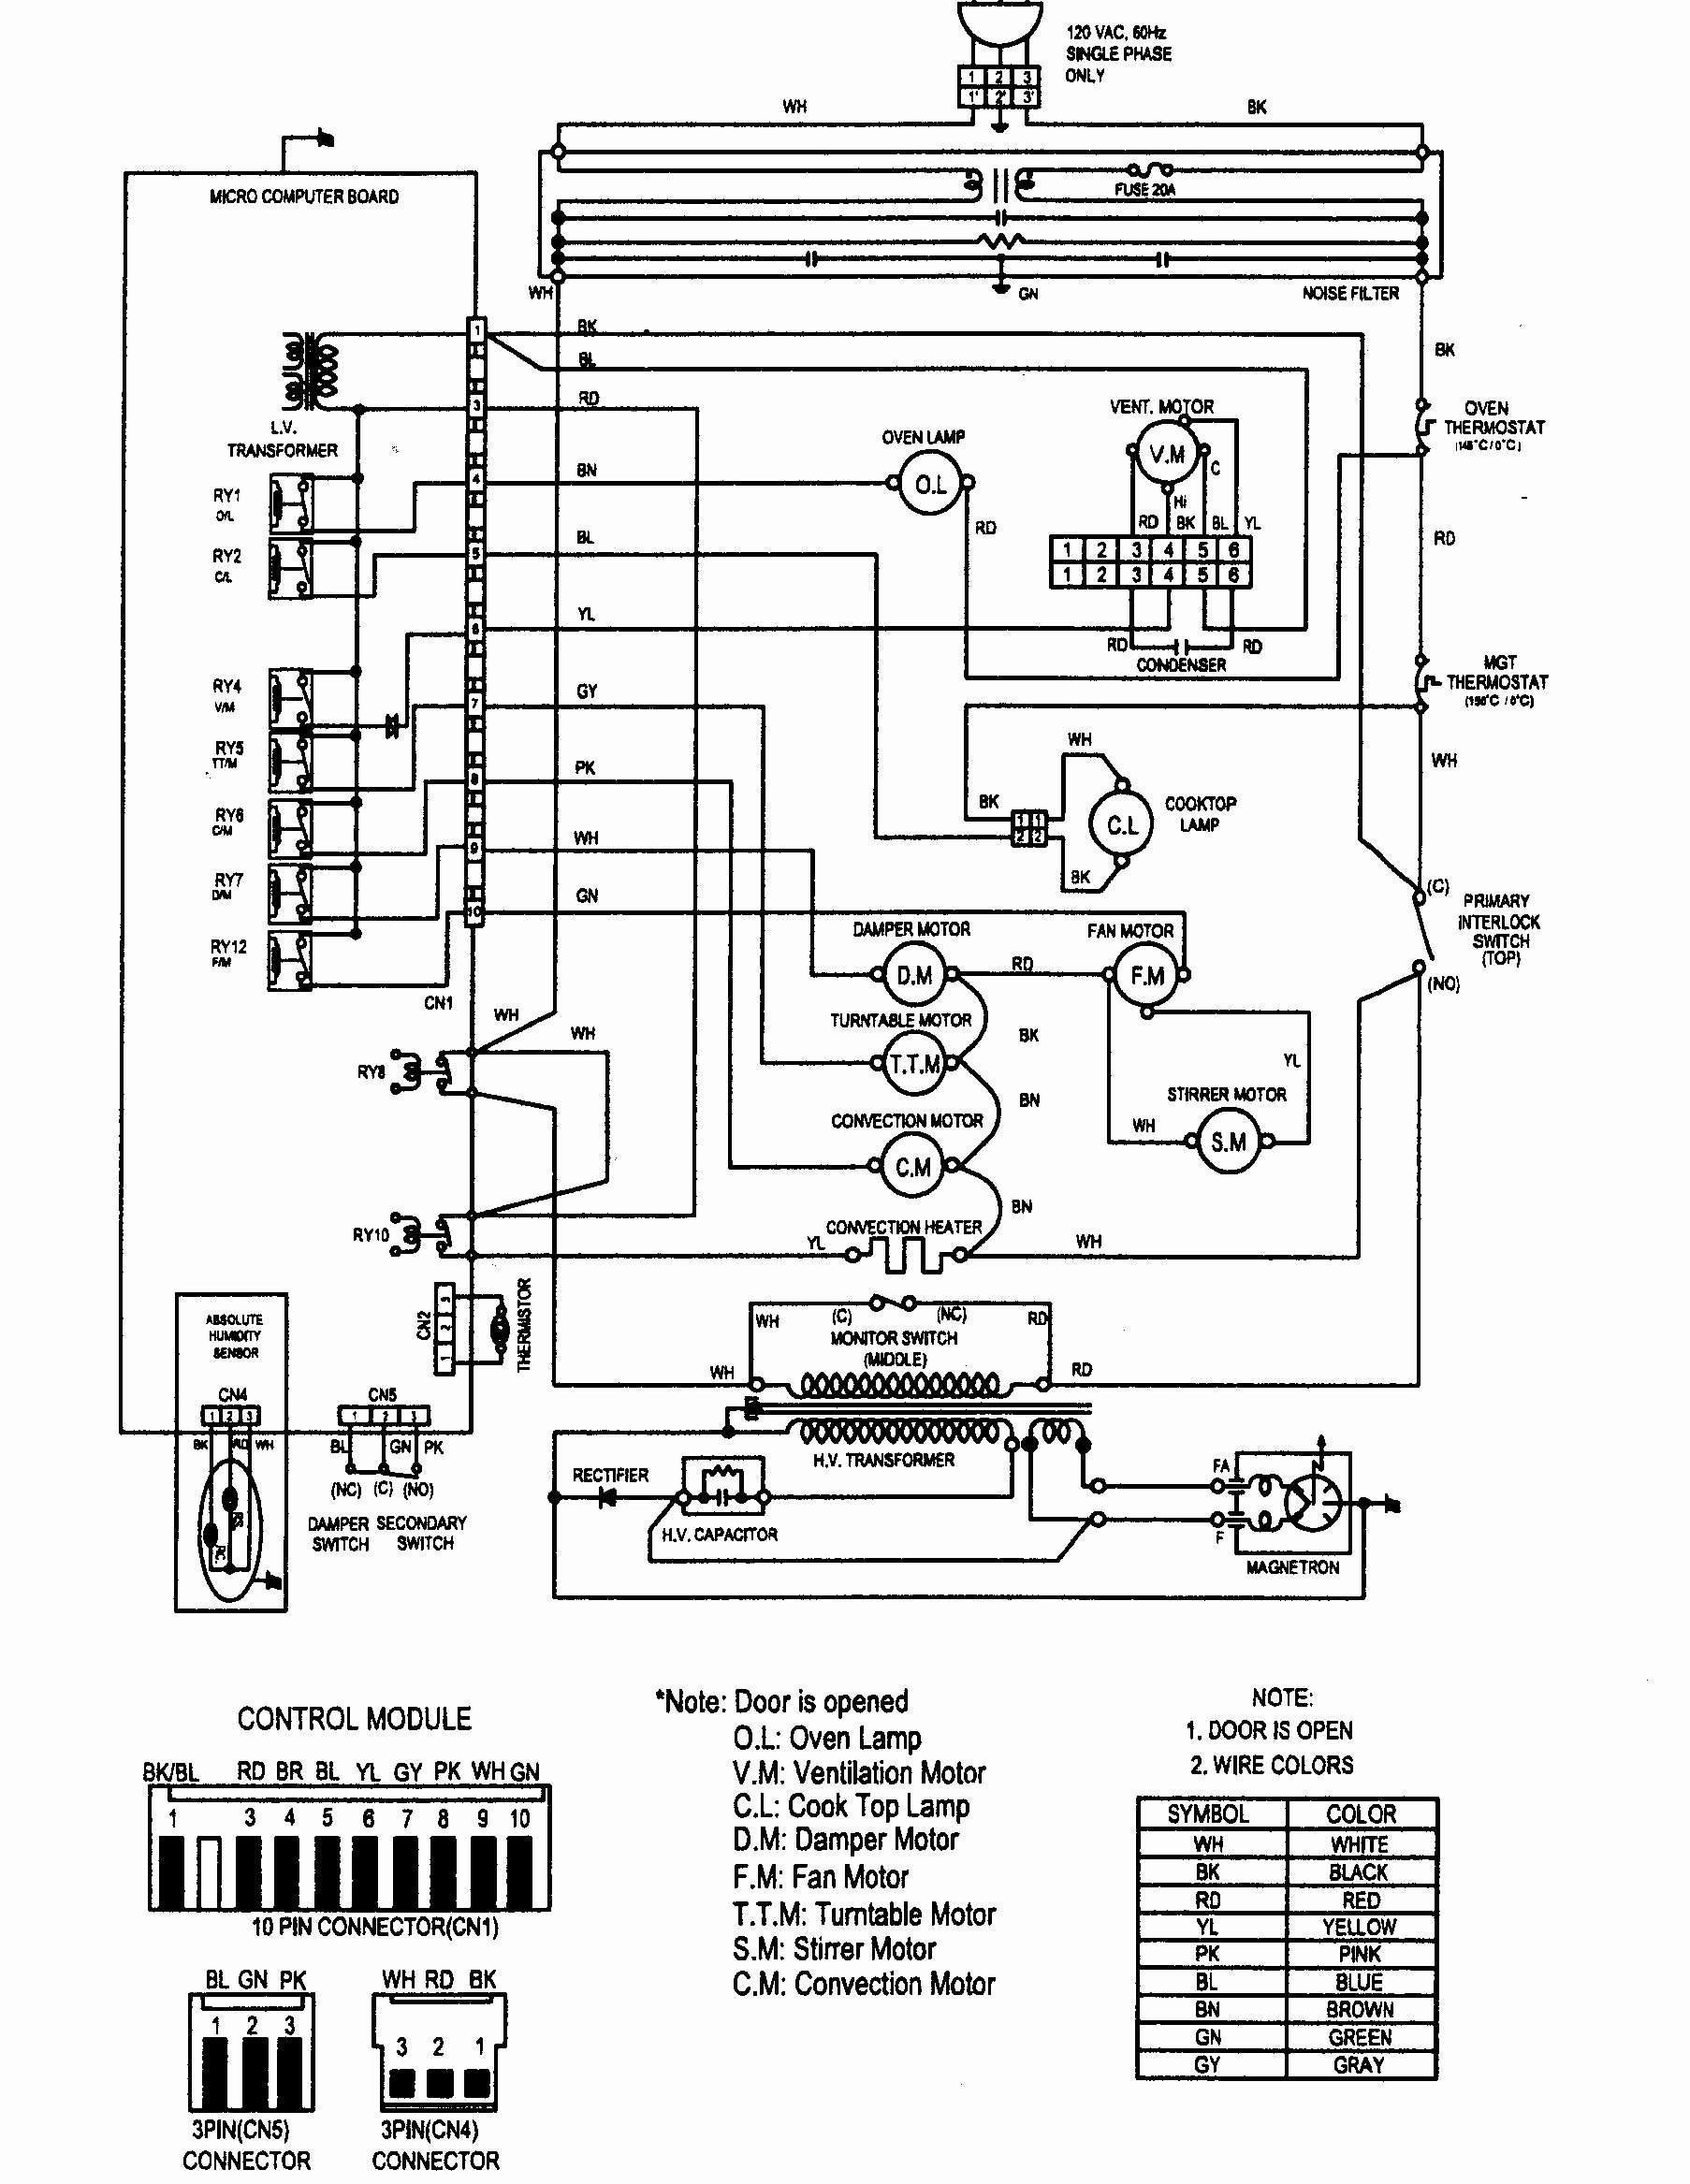 Kenmore    Side by Side Refrigerator    Wiring       Diagram      Free